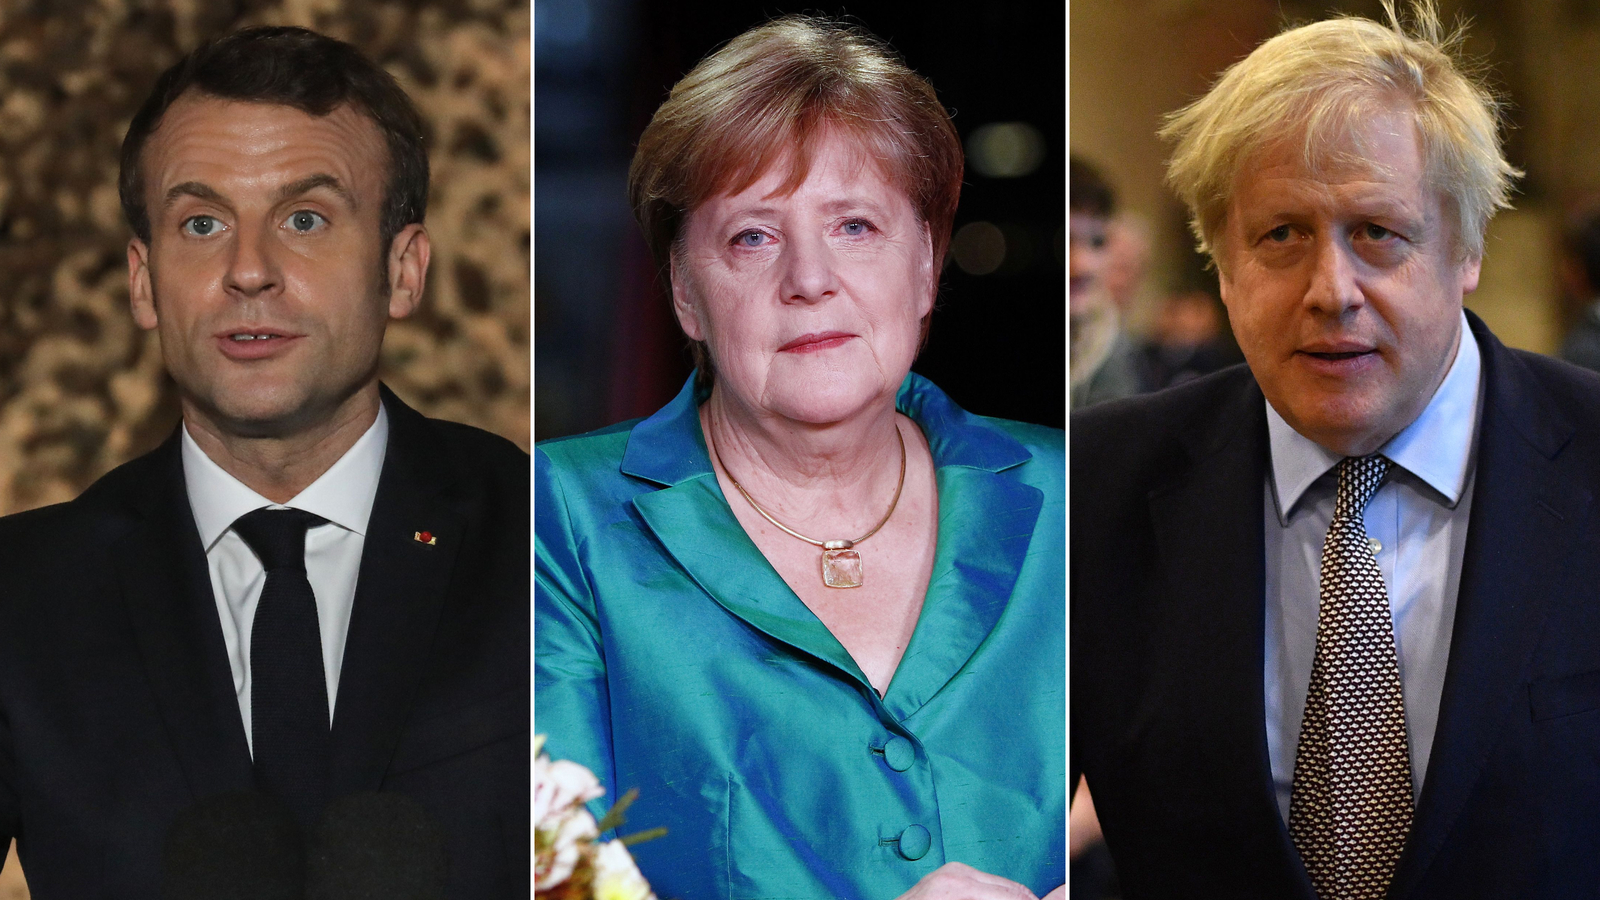 L-R: French President Emmanuel Macron, German Chancellor Angela Merkel and British Prime Minister Boris Johnson